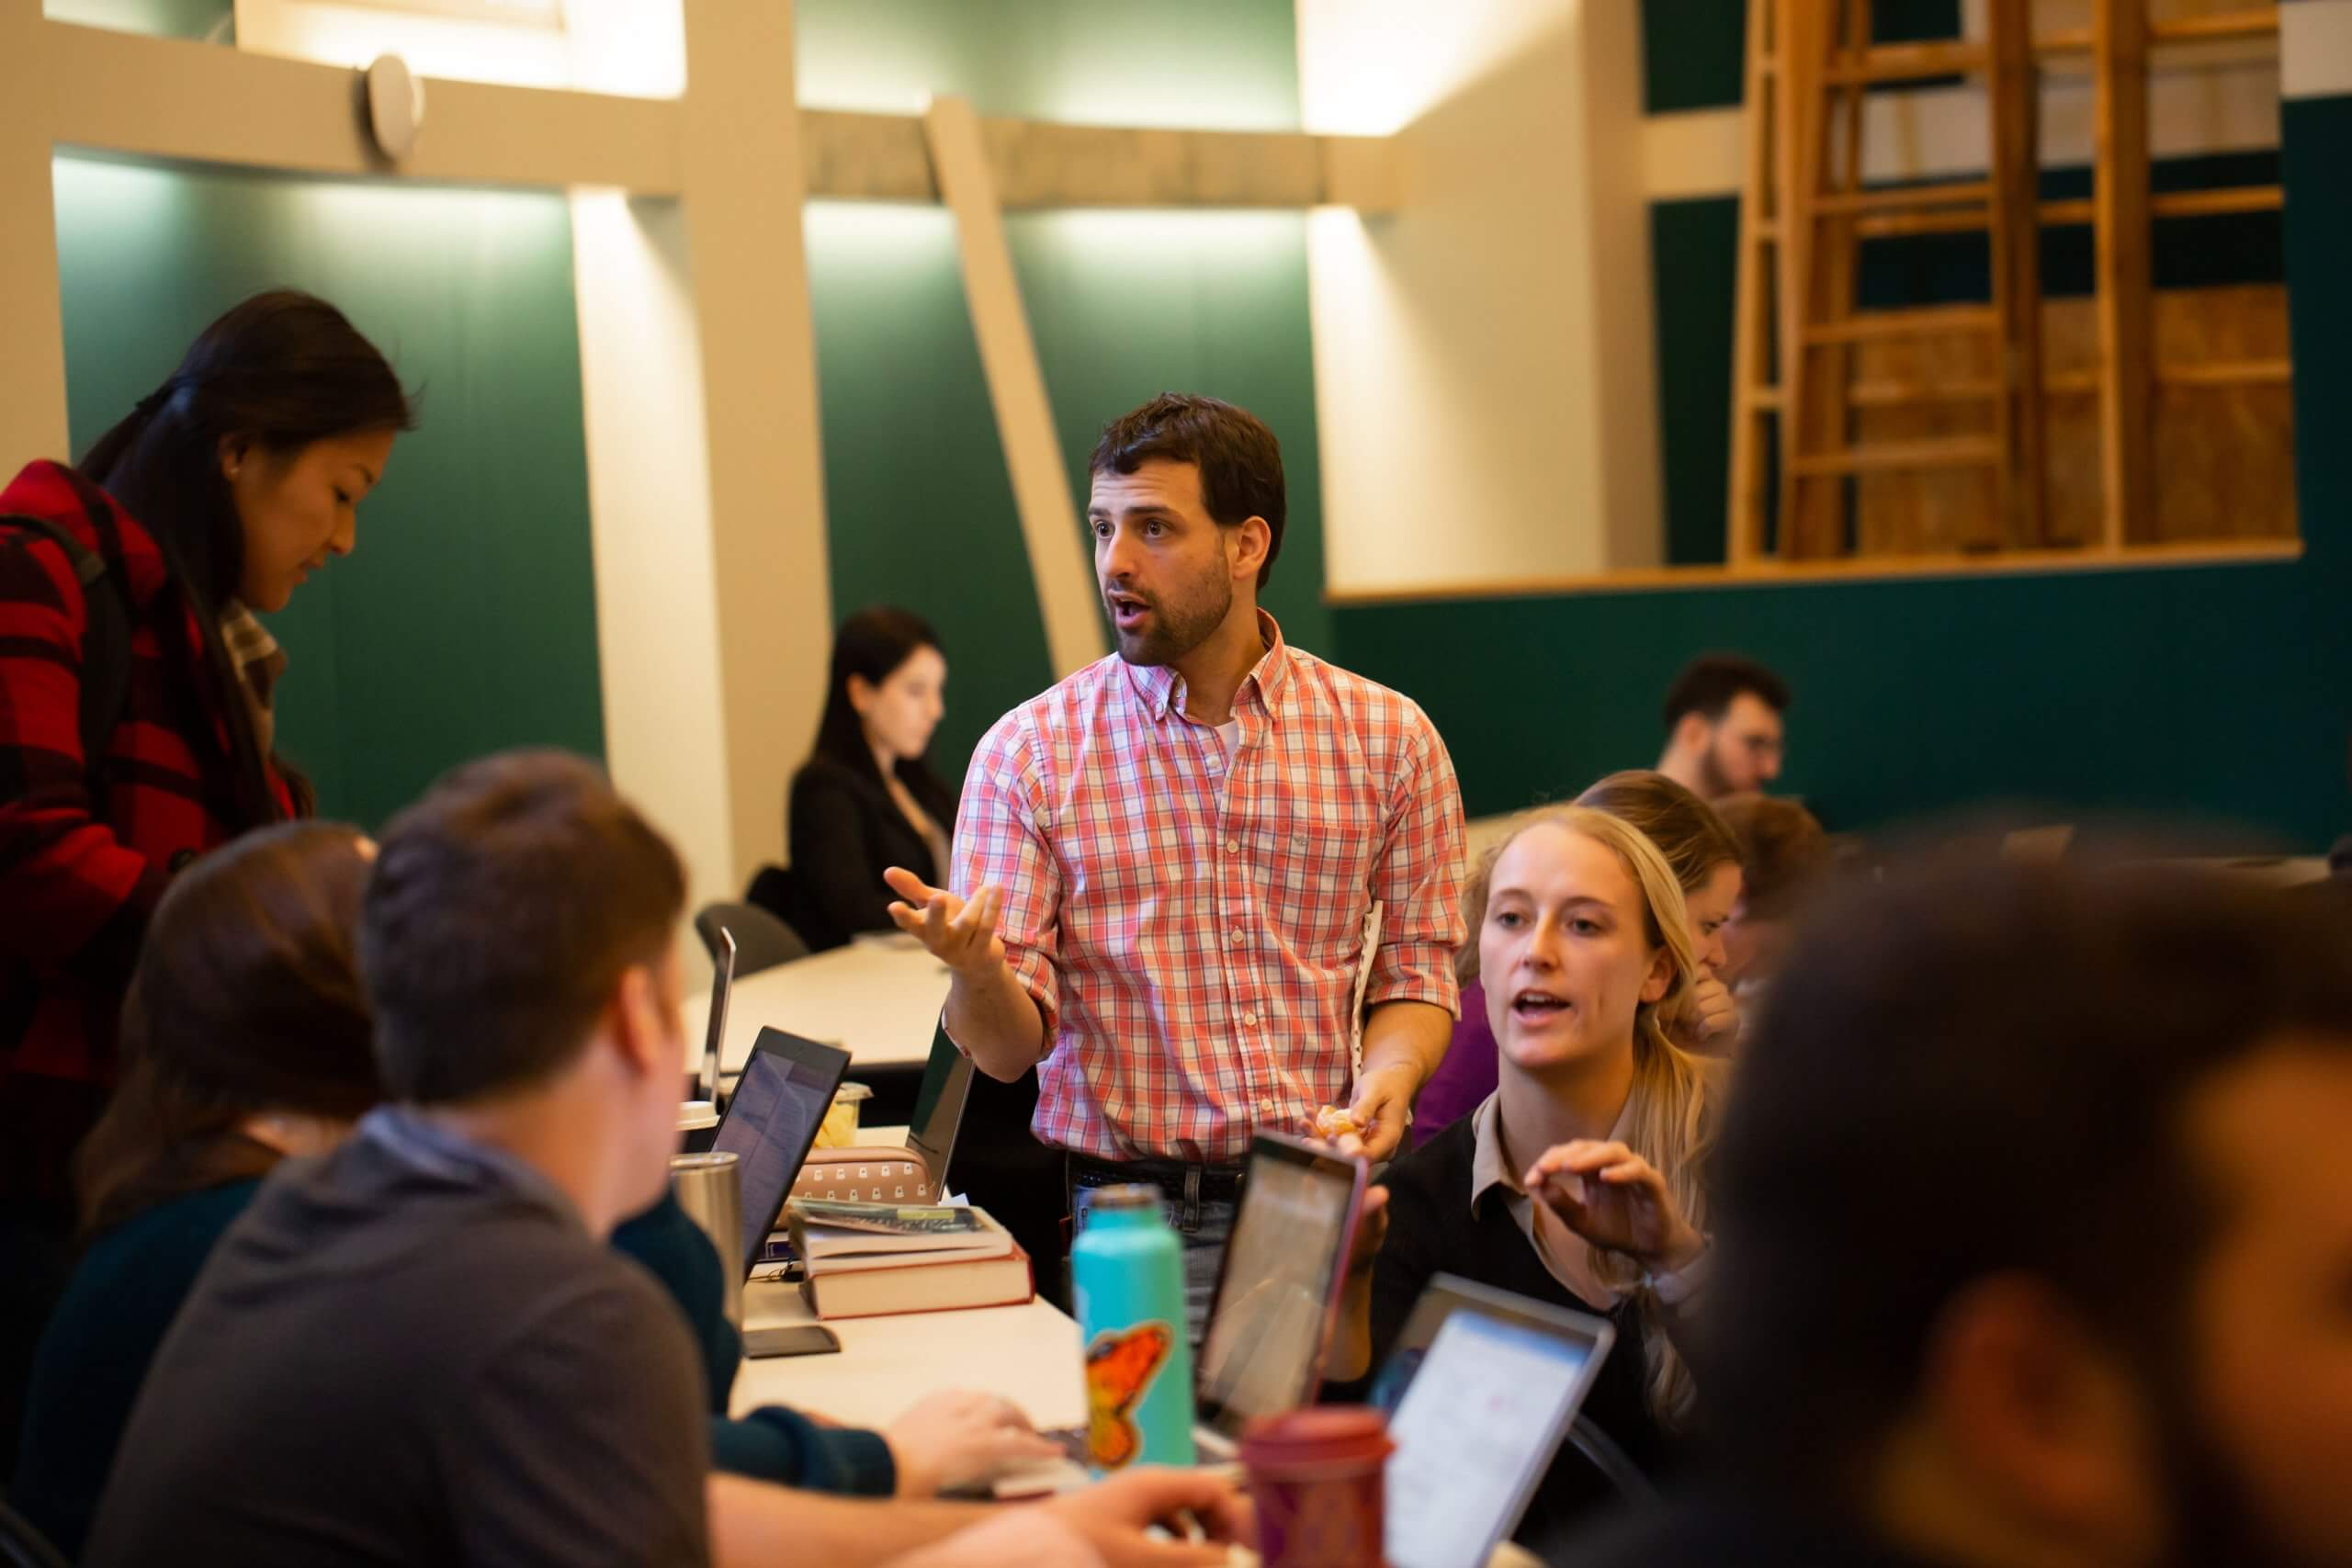 UNH Law: Level-up your legal expertise online at a leading law school